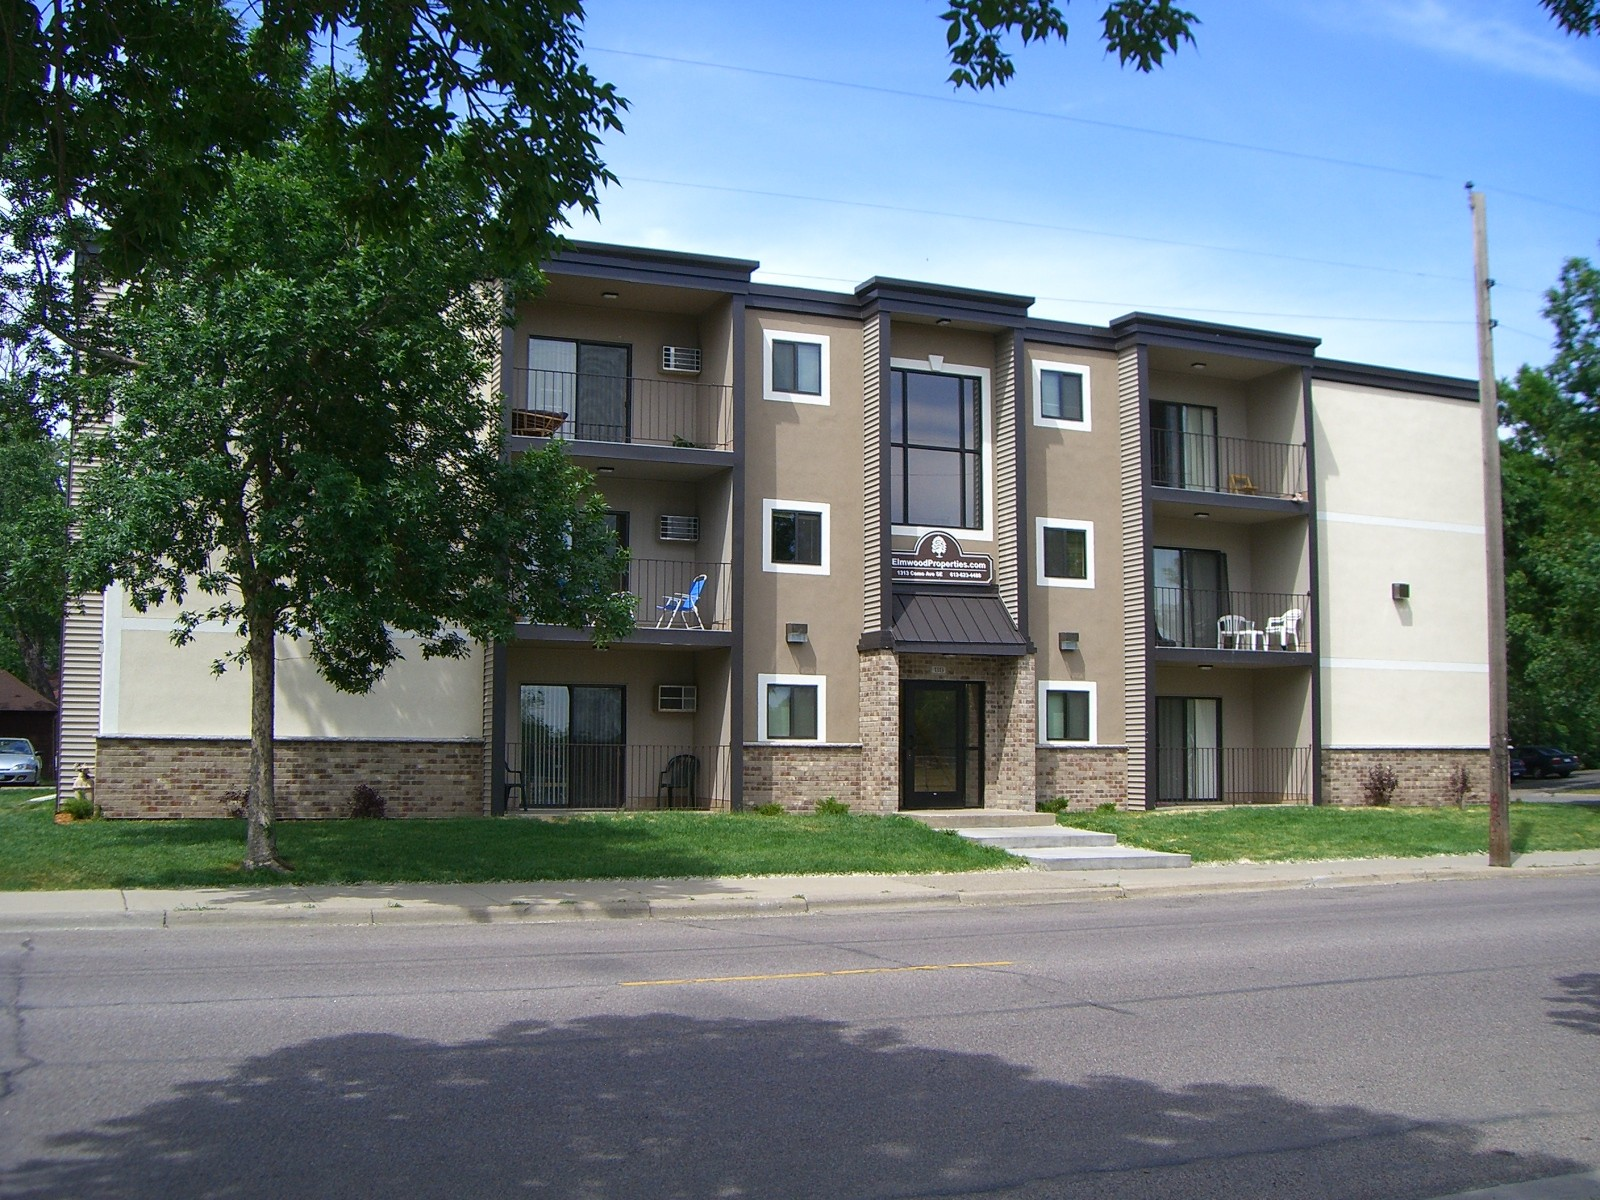 924 17th Ave Se Minneapolis Mn 55414 2 Bedroom Apartment For Rent Padmapper